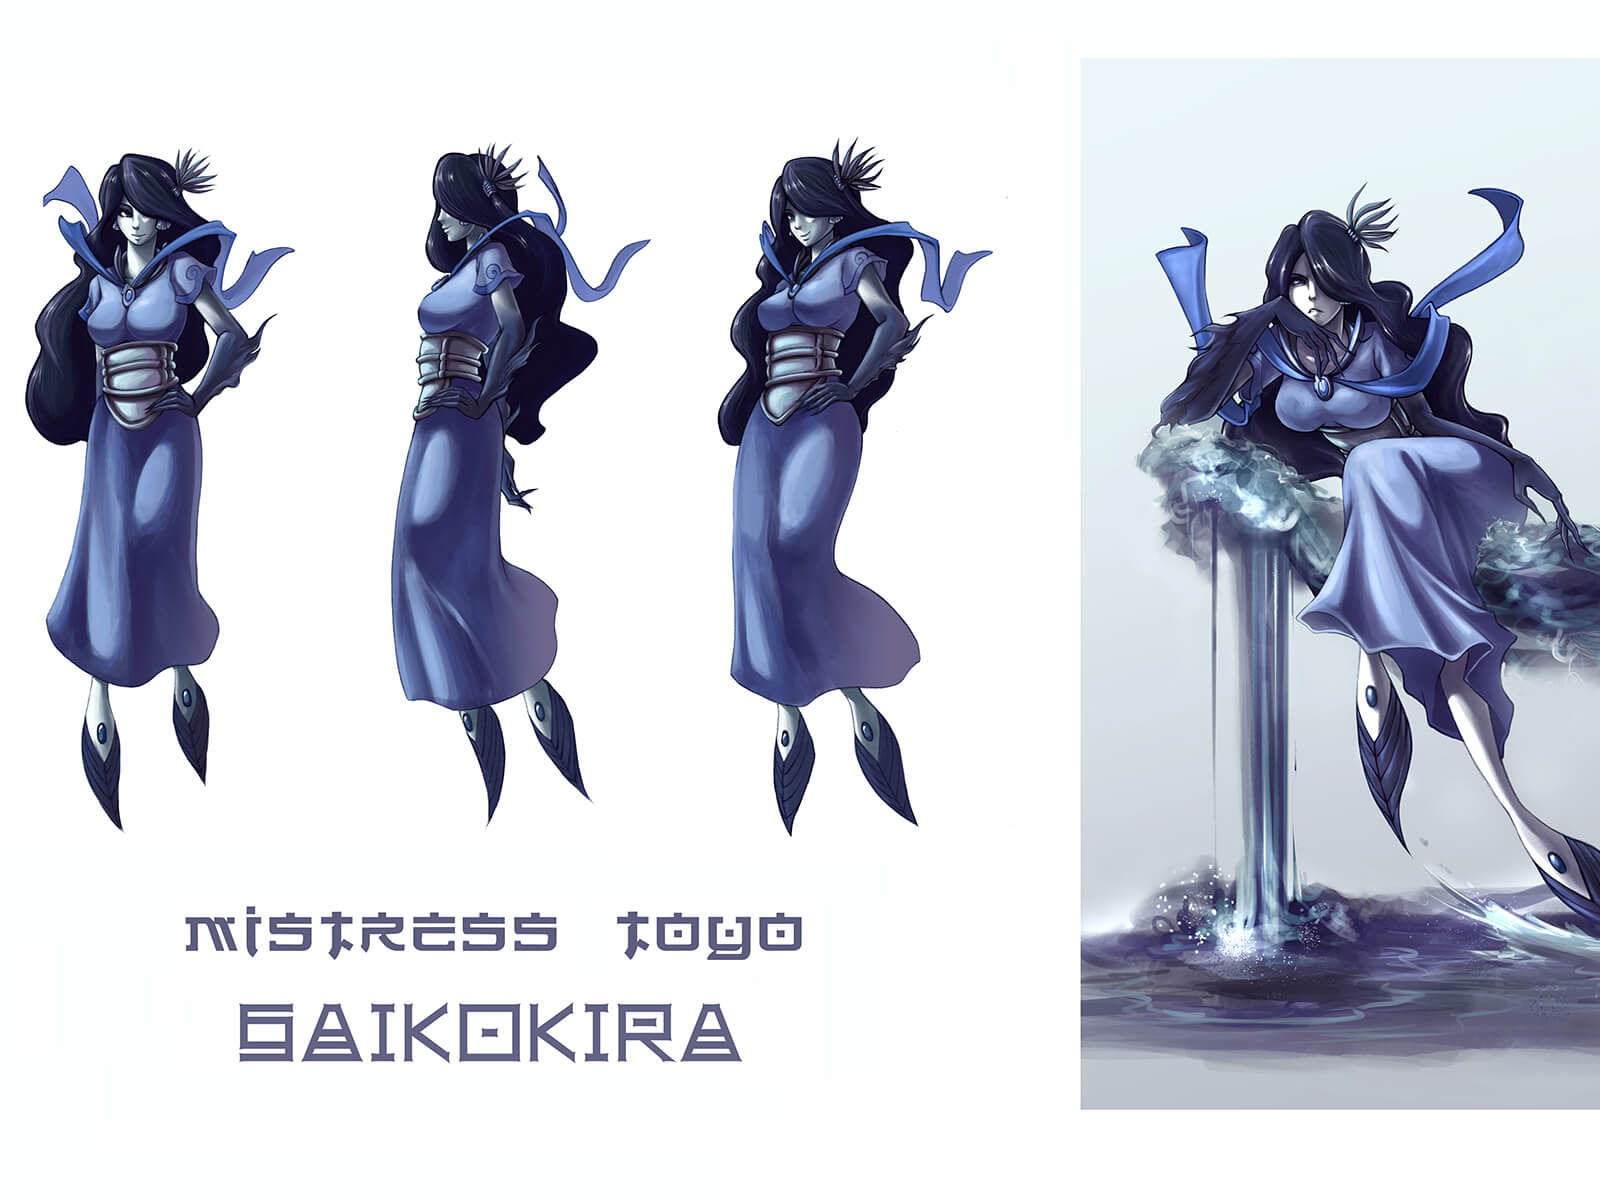 Concept art of a pale, black-haired humanoid with frilled feet in various poses, including sitting on a throne of water.